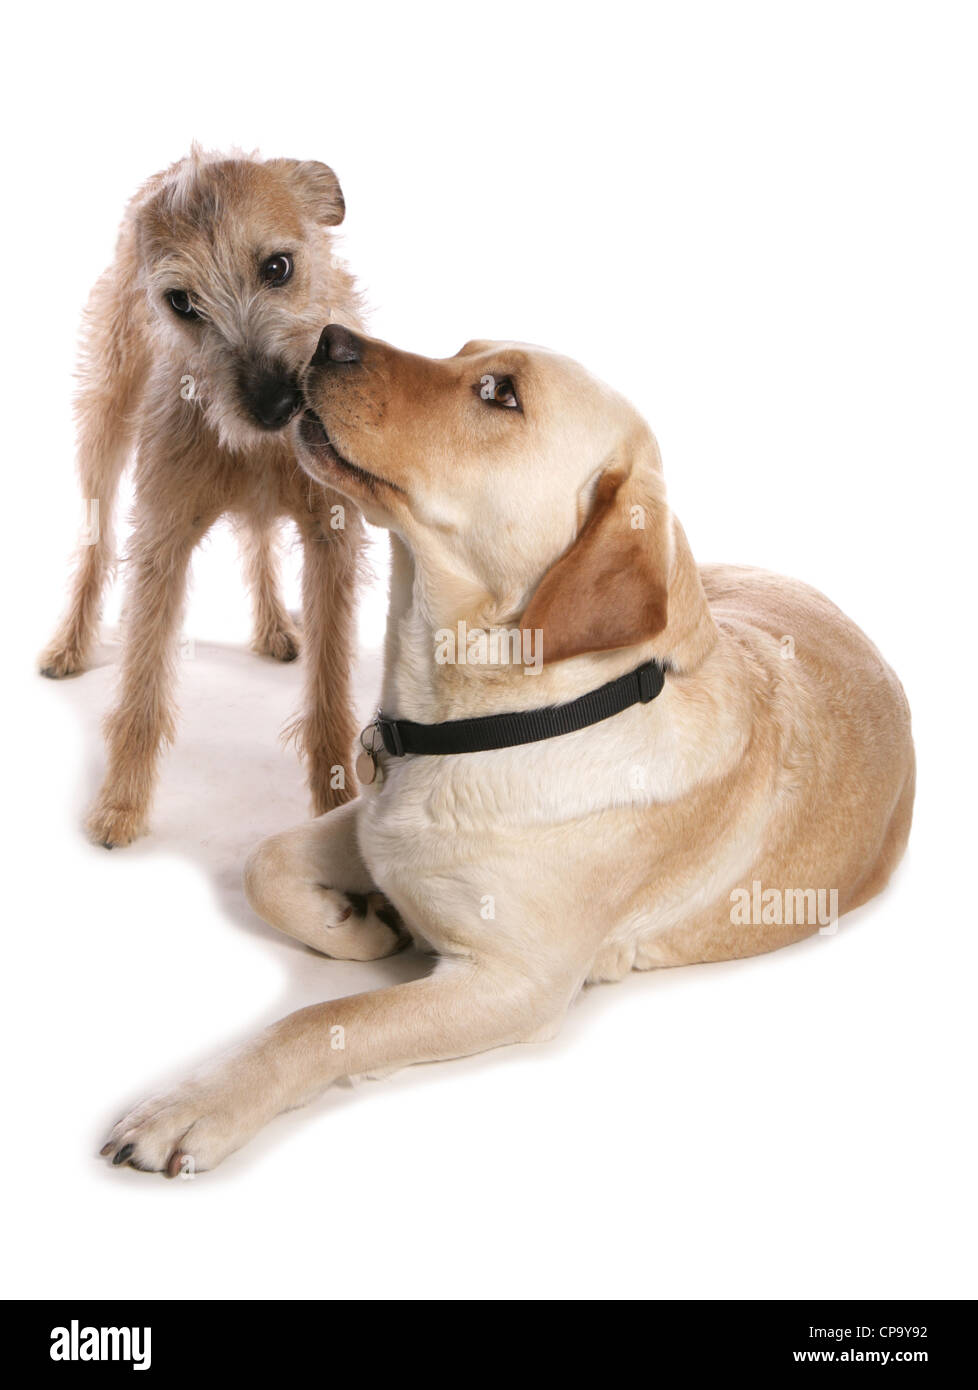 Dogs Kissing Stock Photos Amp Dogs Kissing Stock Images Alamy